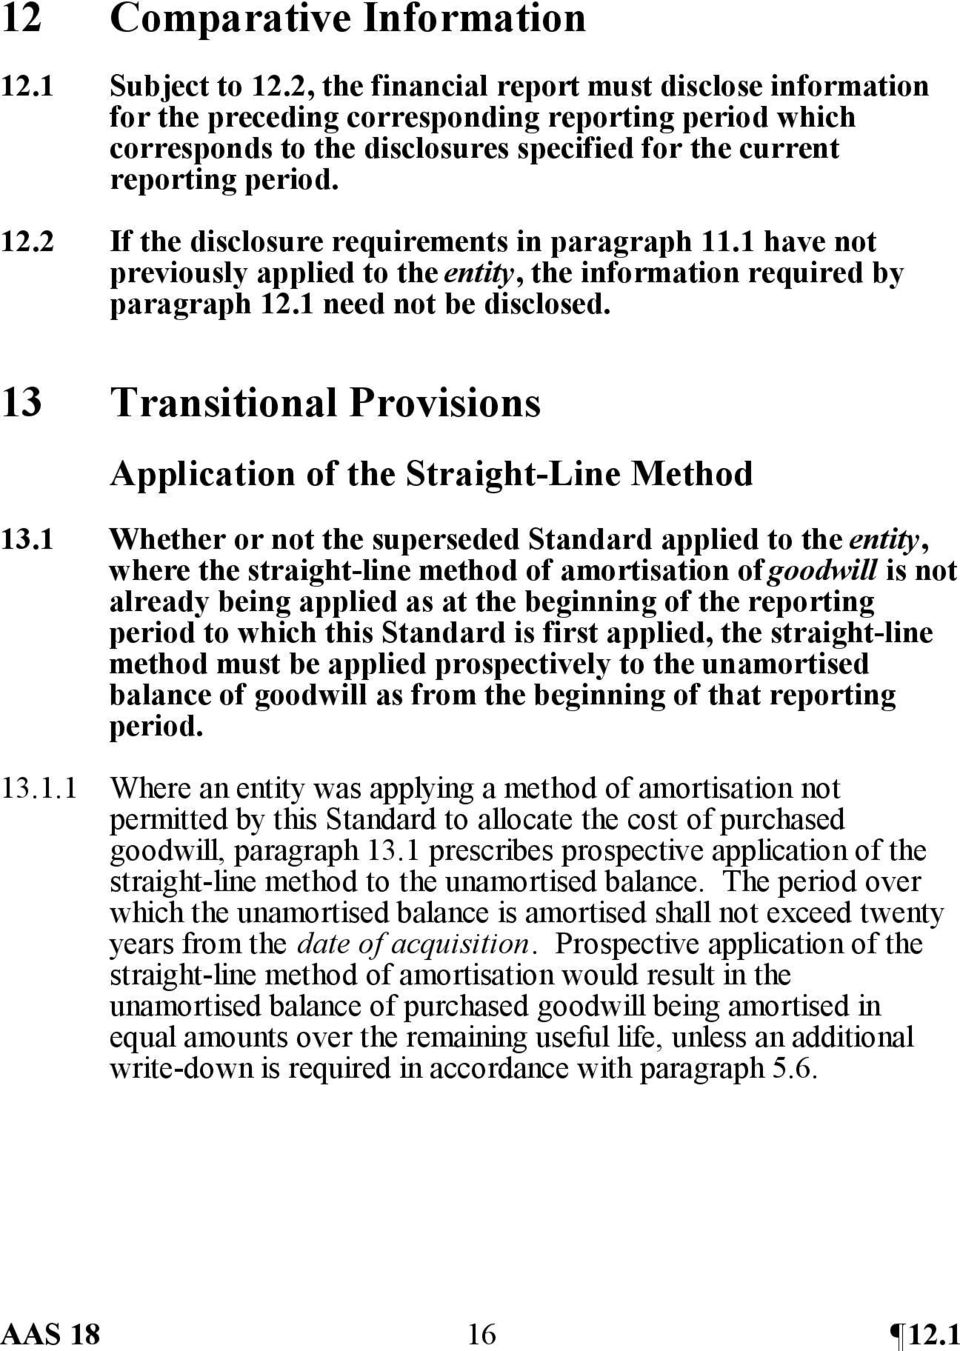 2 If the disclosure requirements in paragraph 11.1 have not previously applied to the entity, the information required by paragraph 12.1 need not be disclosed.